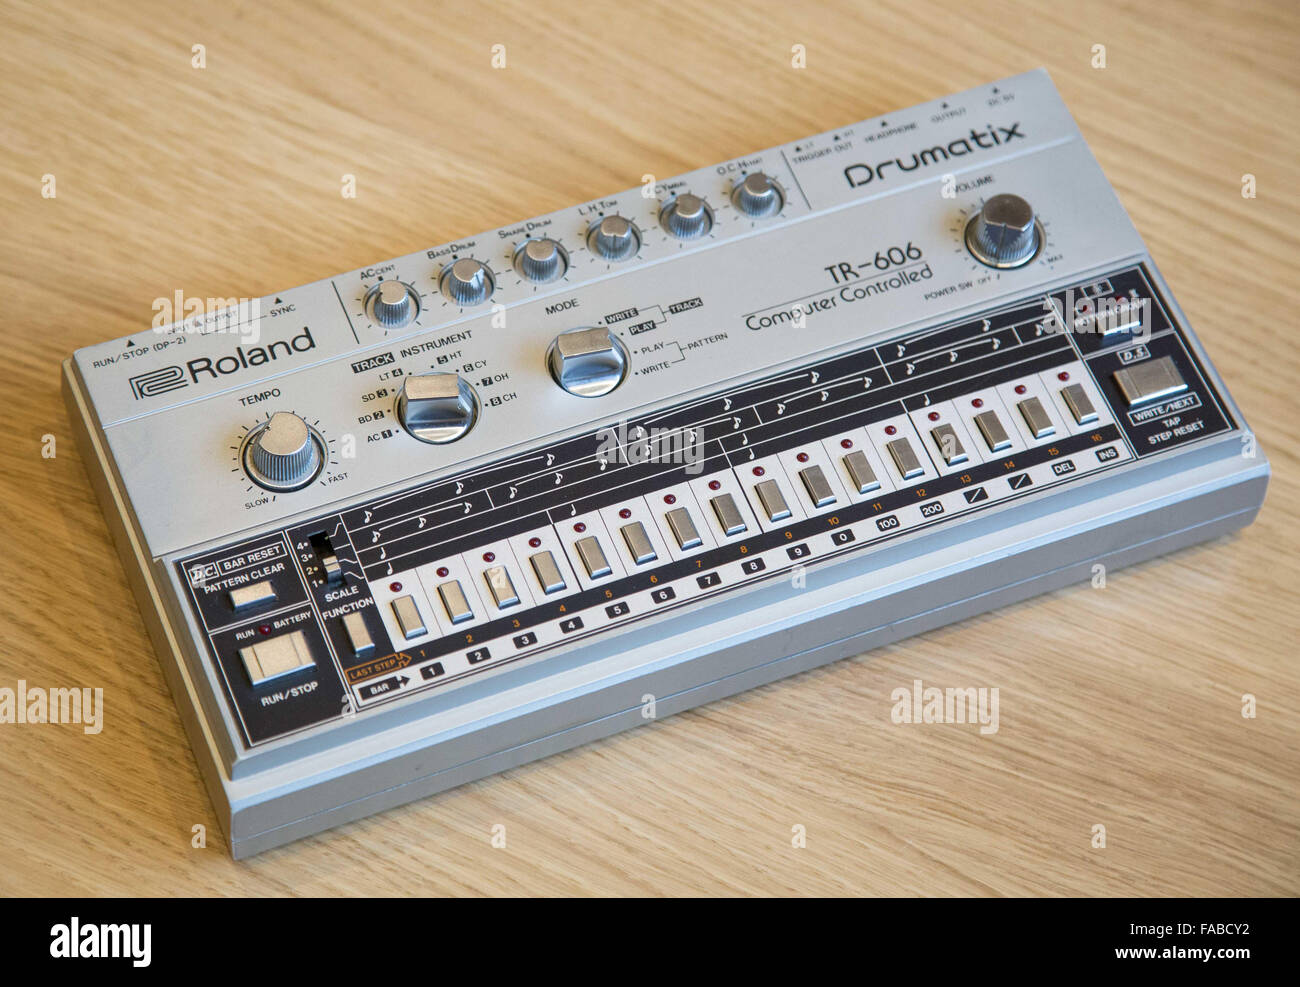 A Roland 606 drum machine Stock Photo